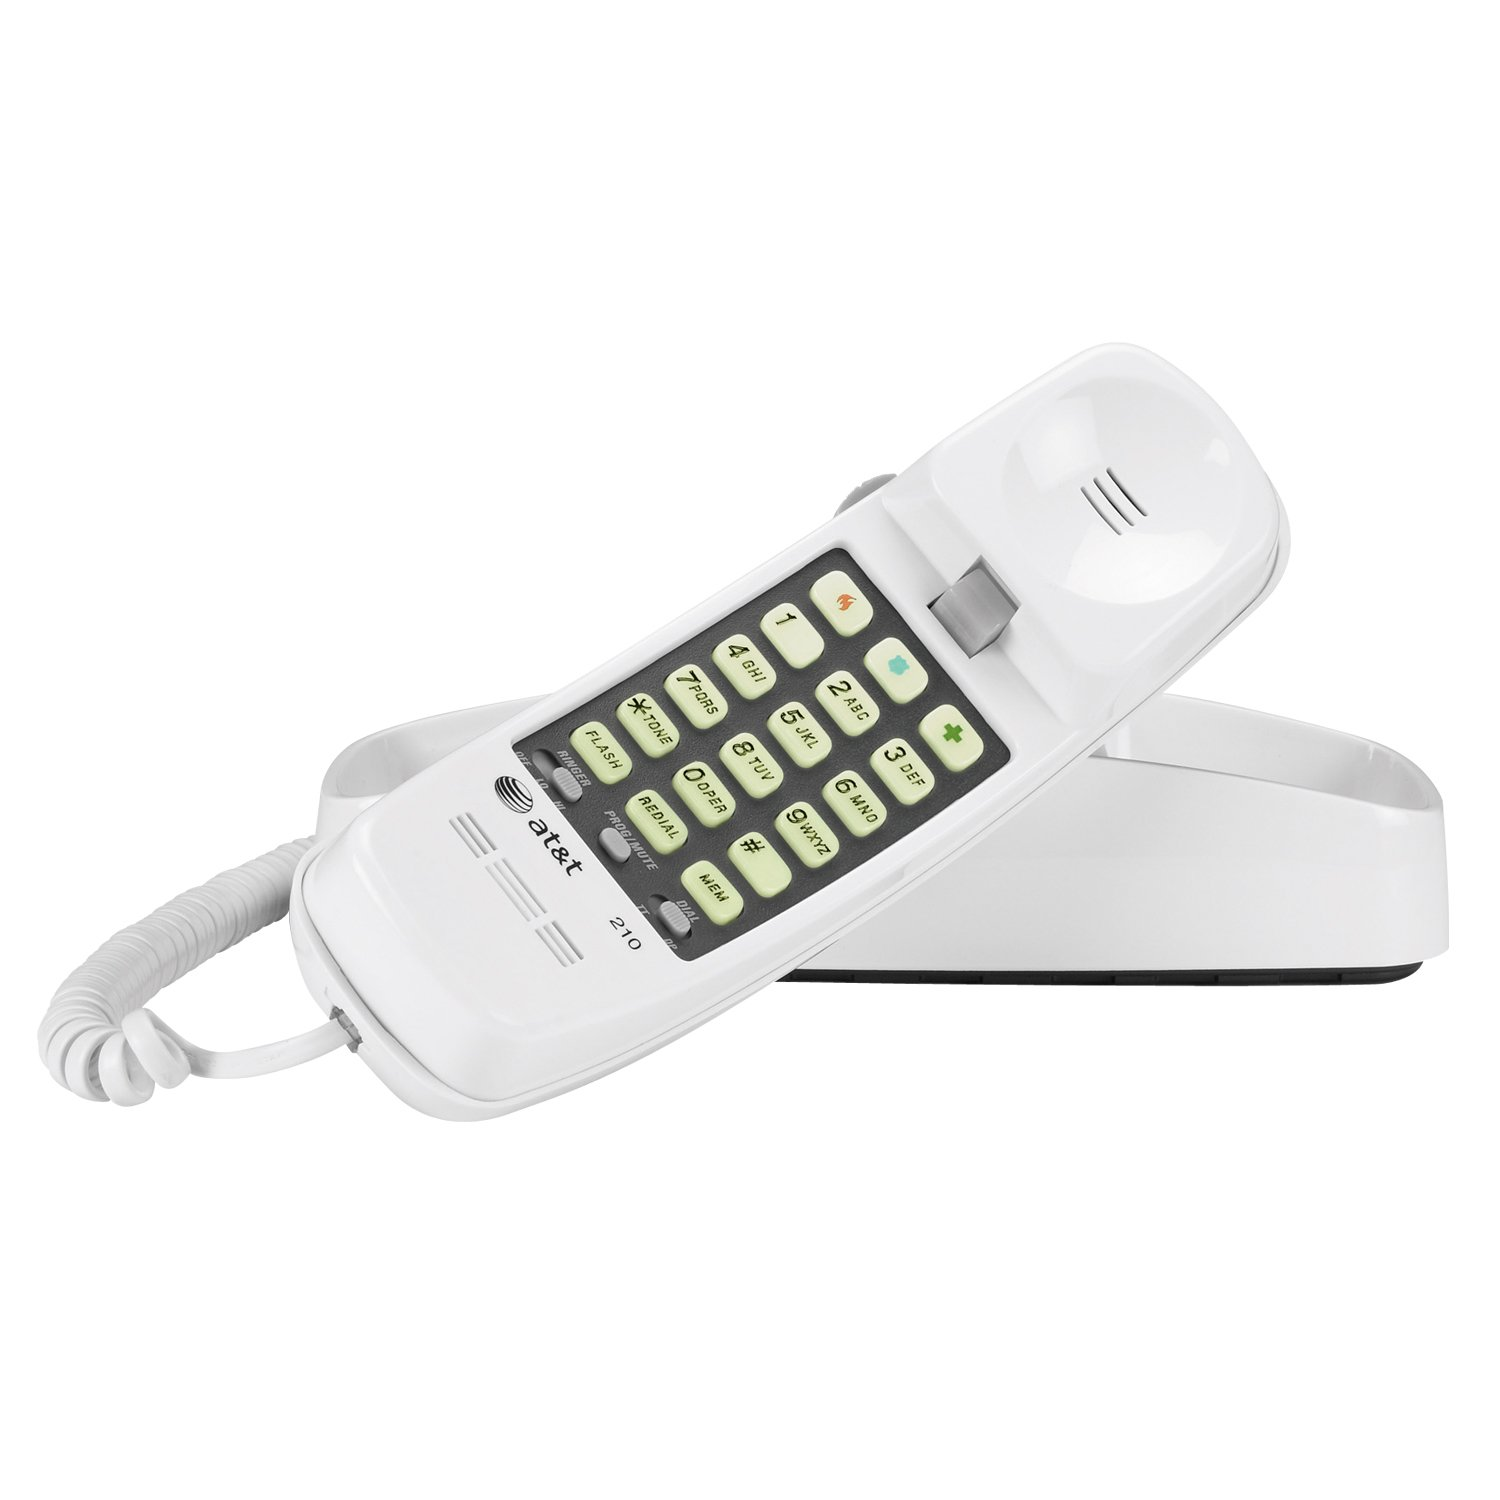 AT&T 210 Basic Trimline Corded Phone, No AC Power Required, Wall-Mountable, White